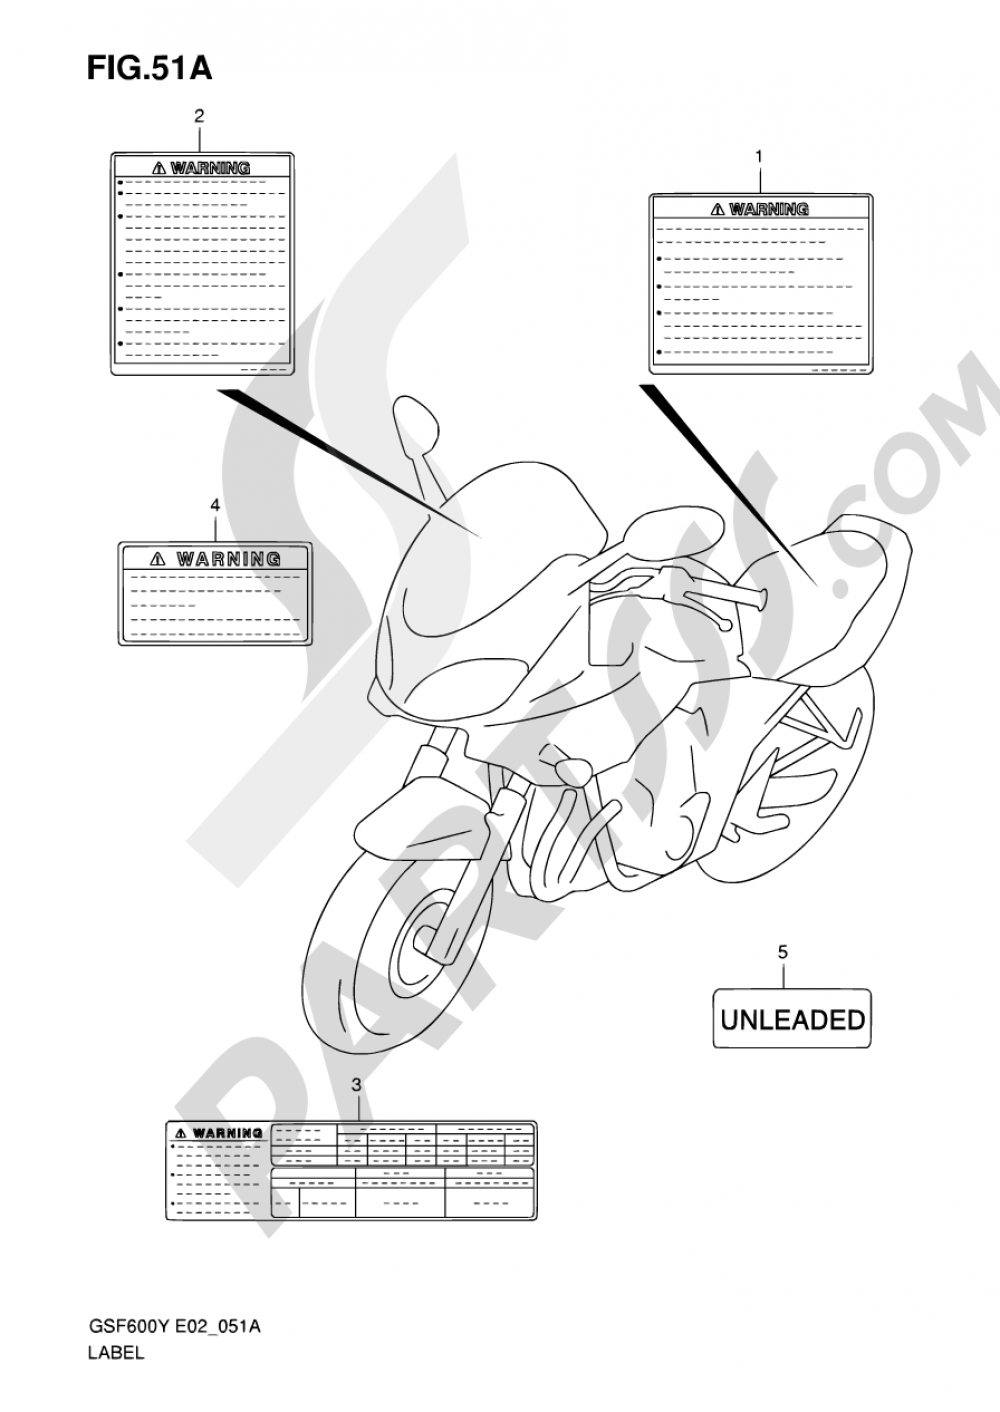 Wiring Diagram 2001 Gsf 600s Library 51a Label Model K1 Suzuki Bandit Gsf600s